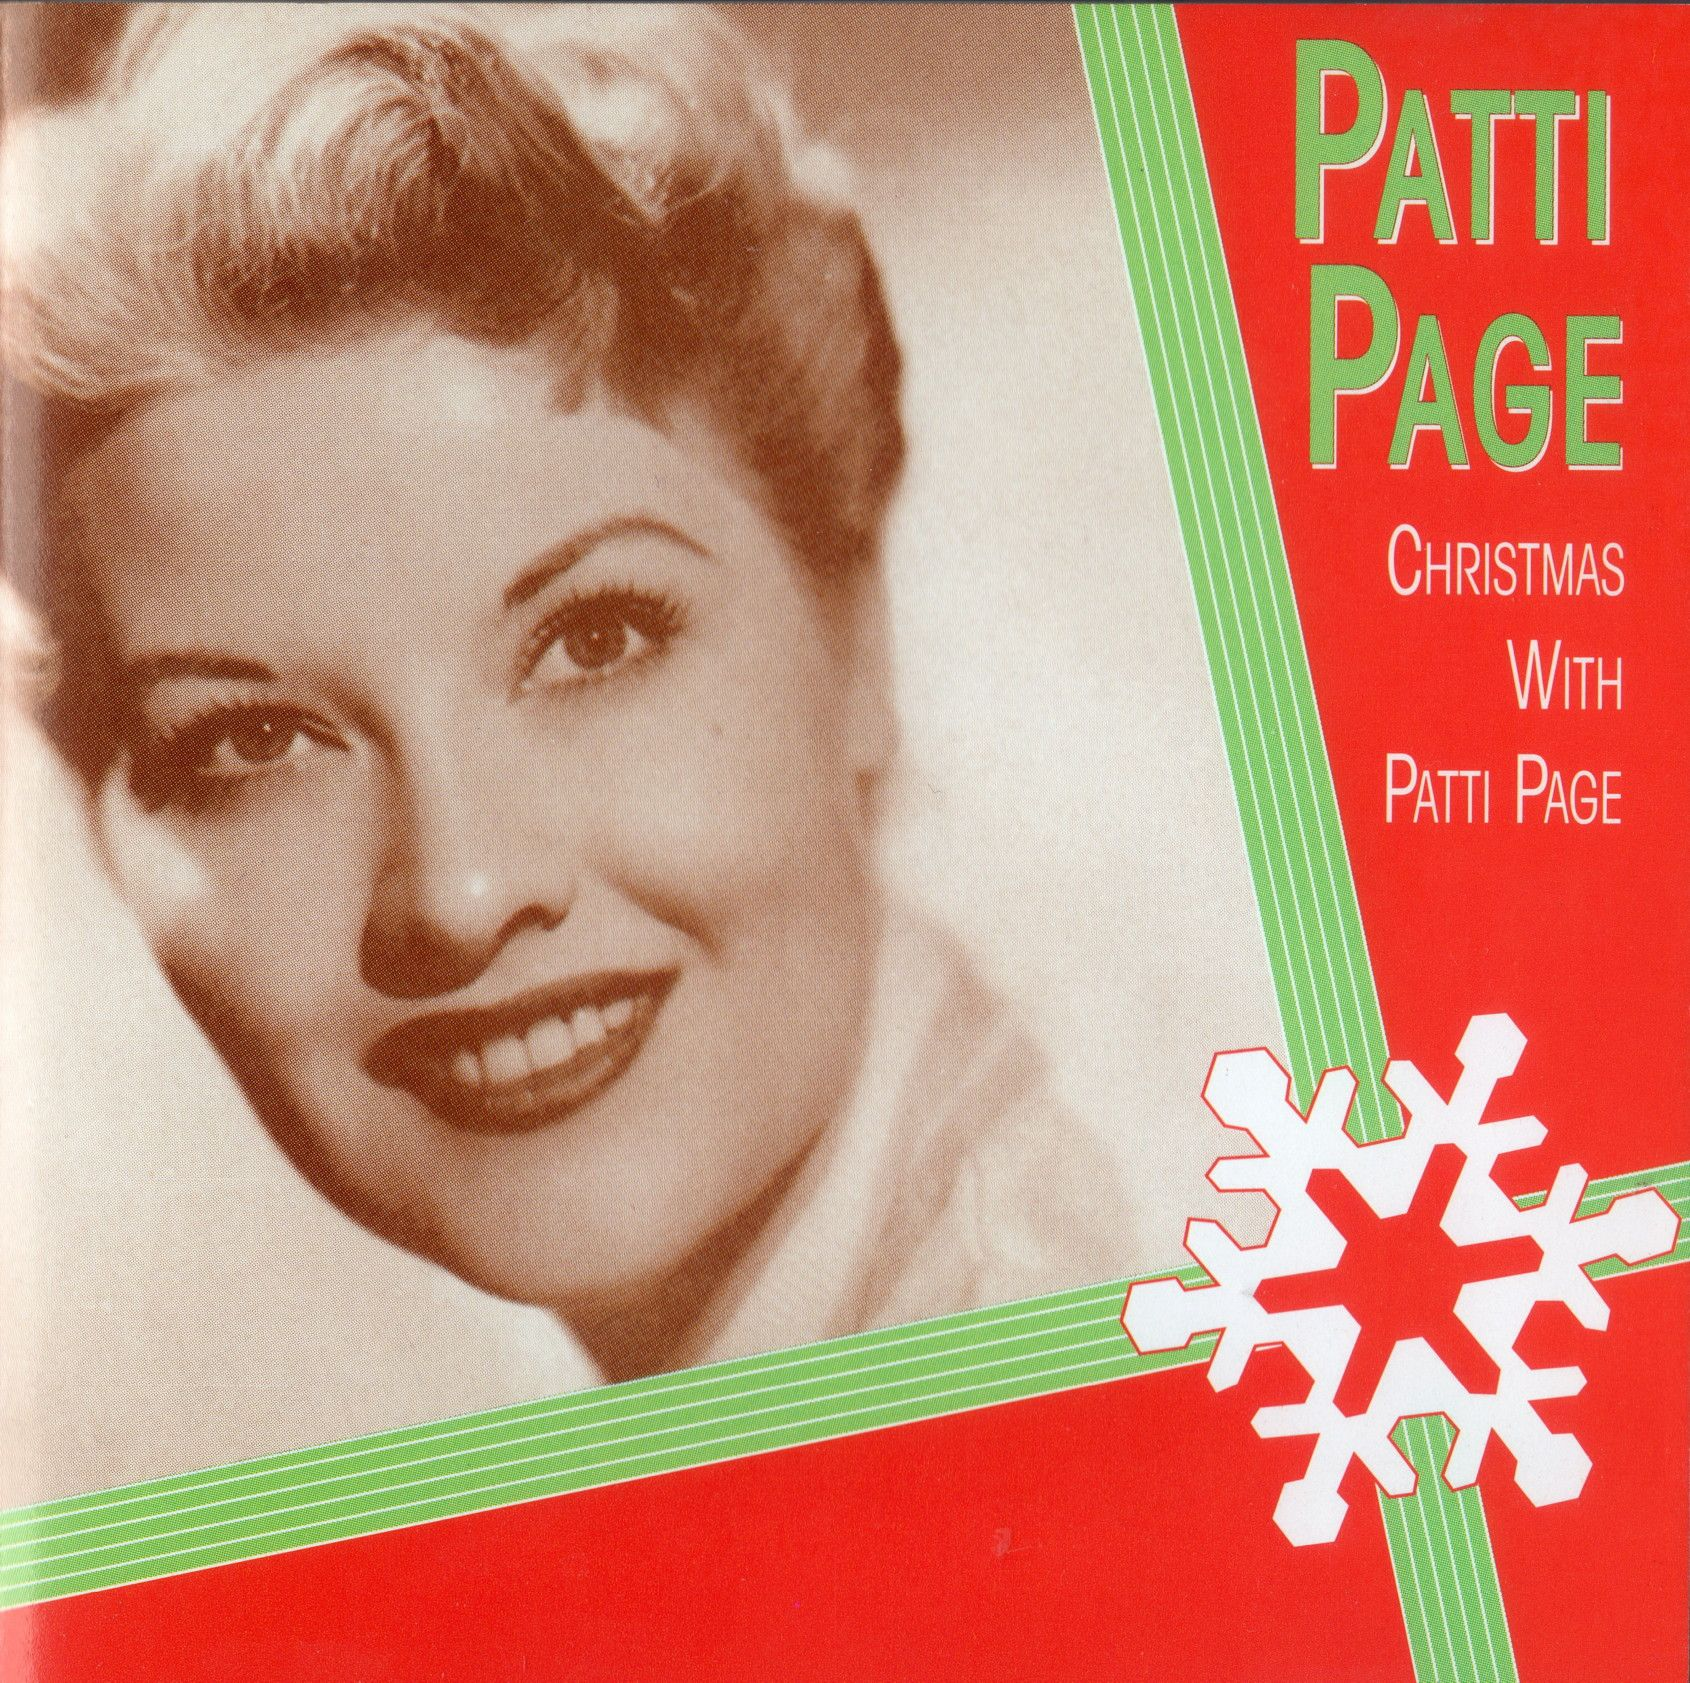 Christmas With Patti Page 1955 Unfortunately I Own The Copy With The Generic 90s Cover But I Just Discovered The Origin Patti Page Christmas Albums Patti